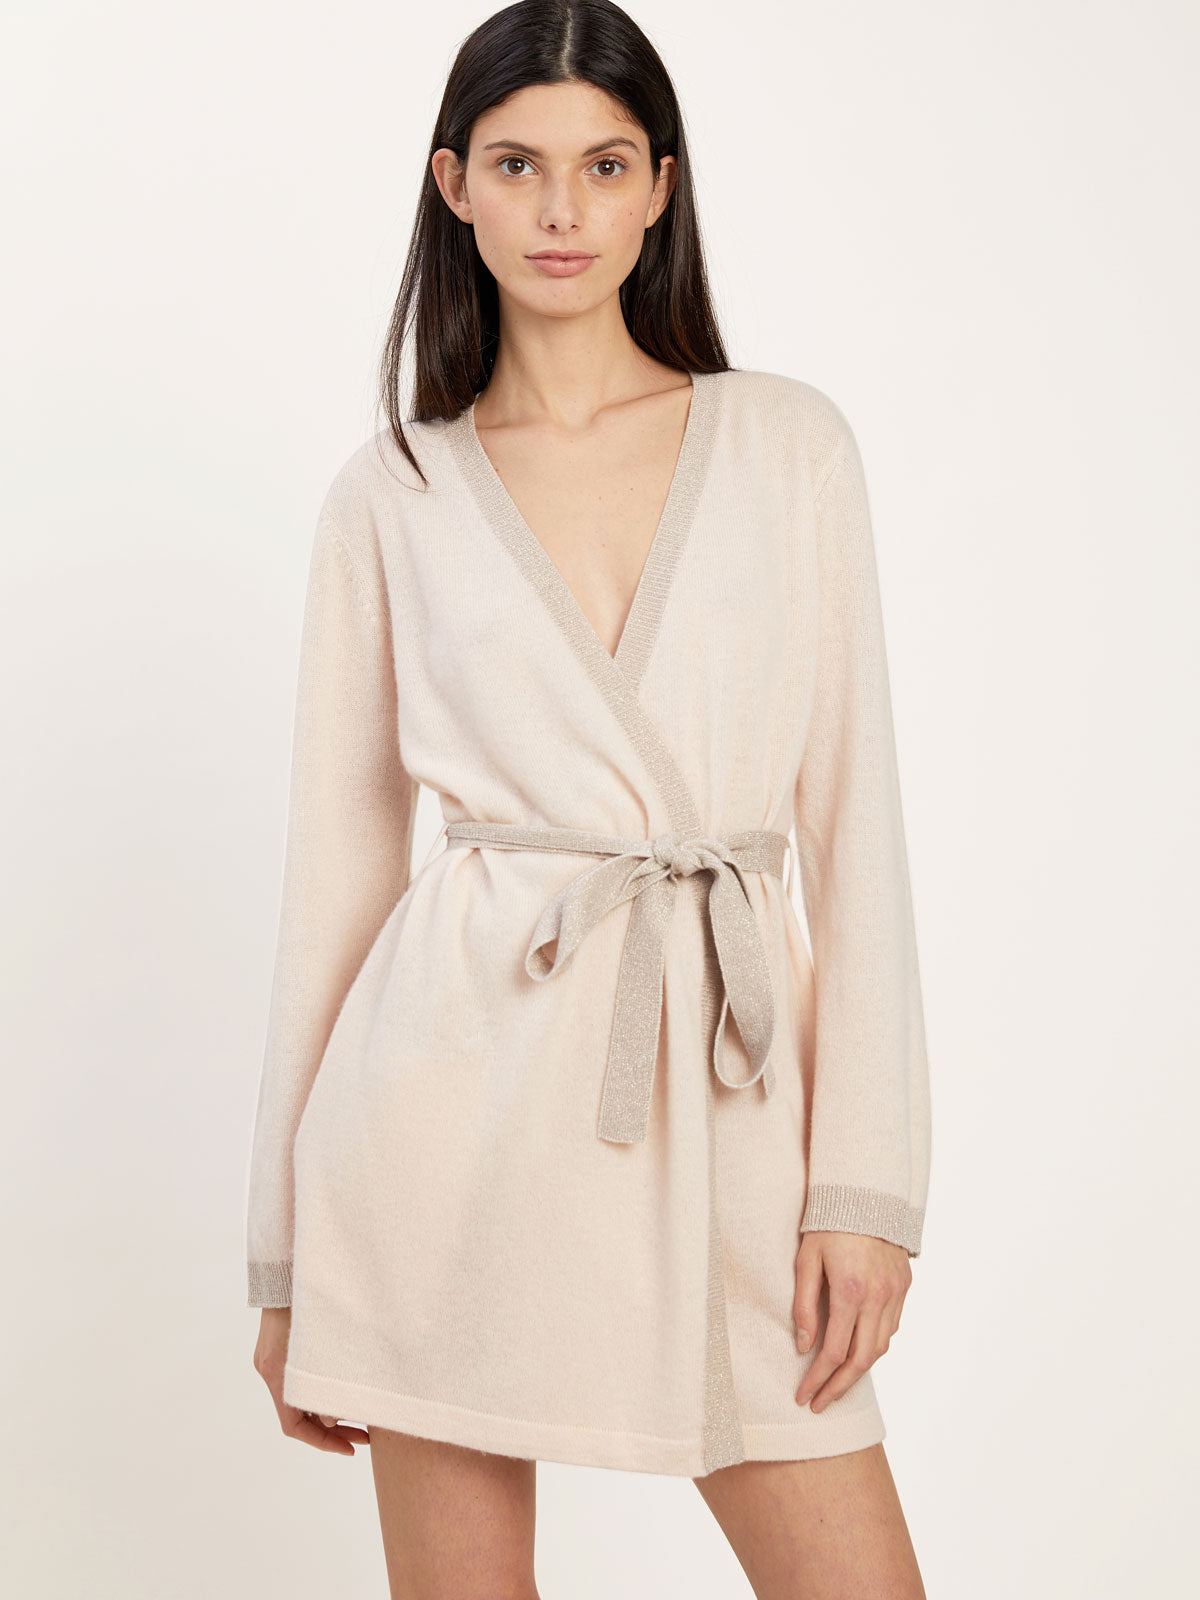 Bella Robe in Cashmere Vanilla By Morgan Lane